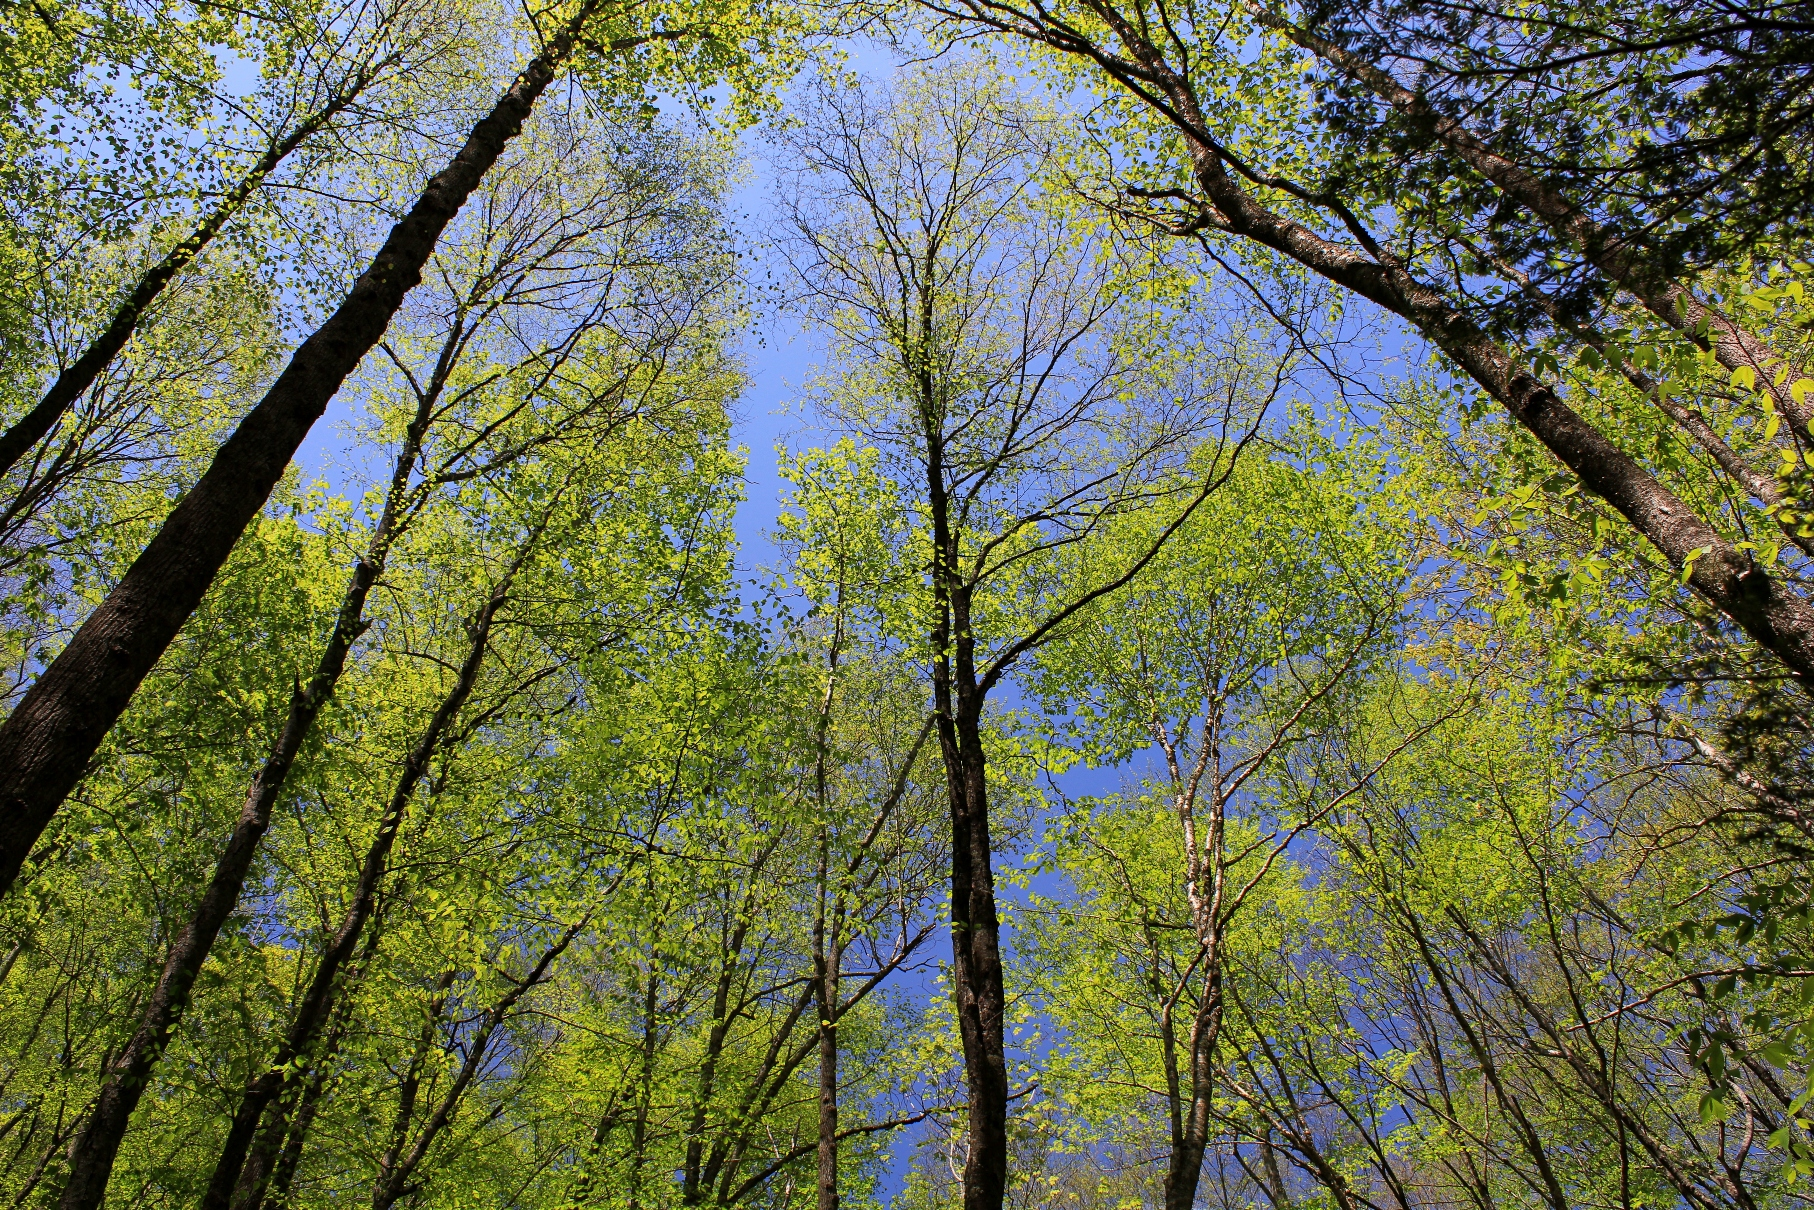 Leafing Out, May 11, 2014